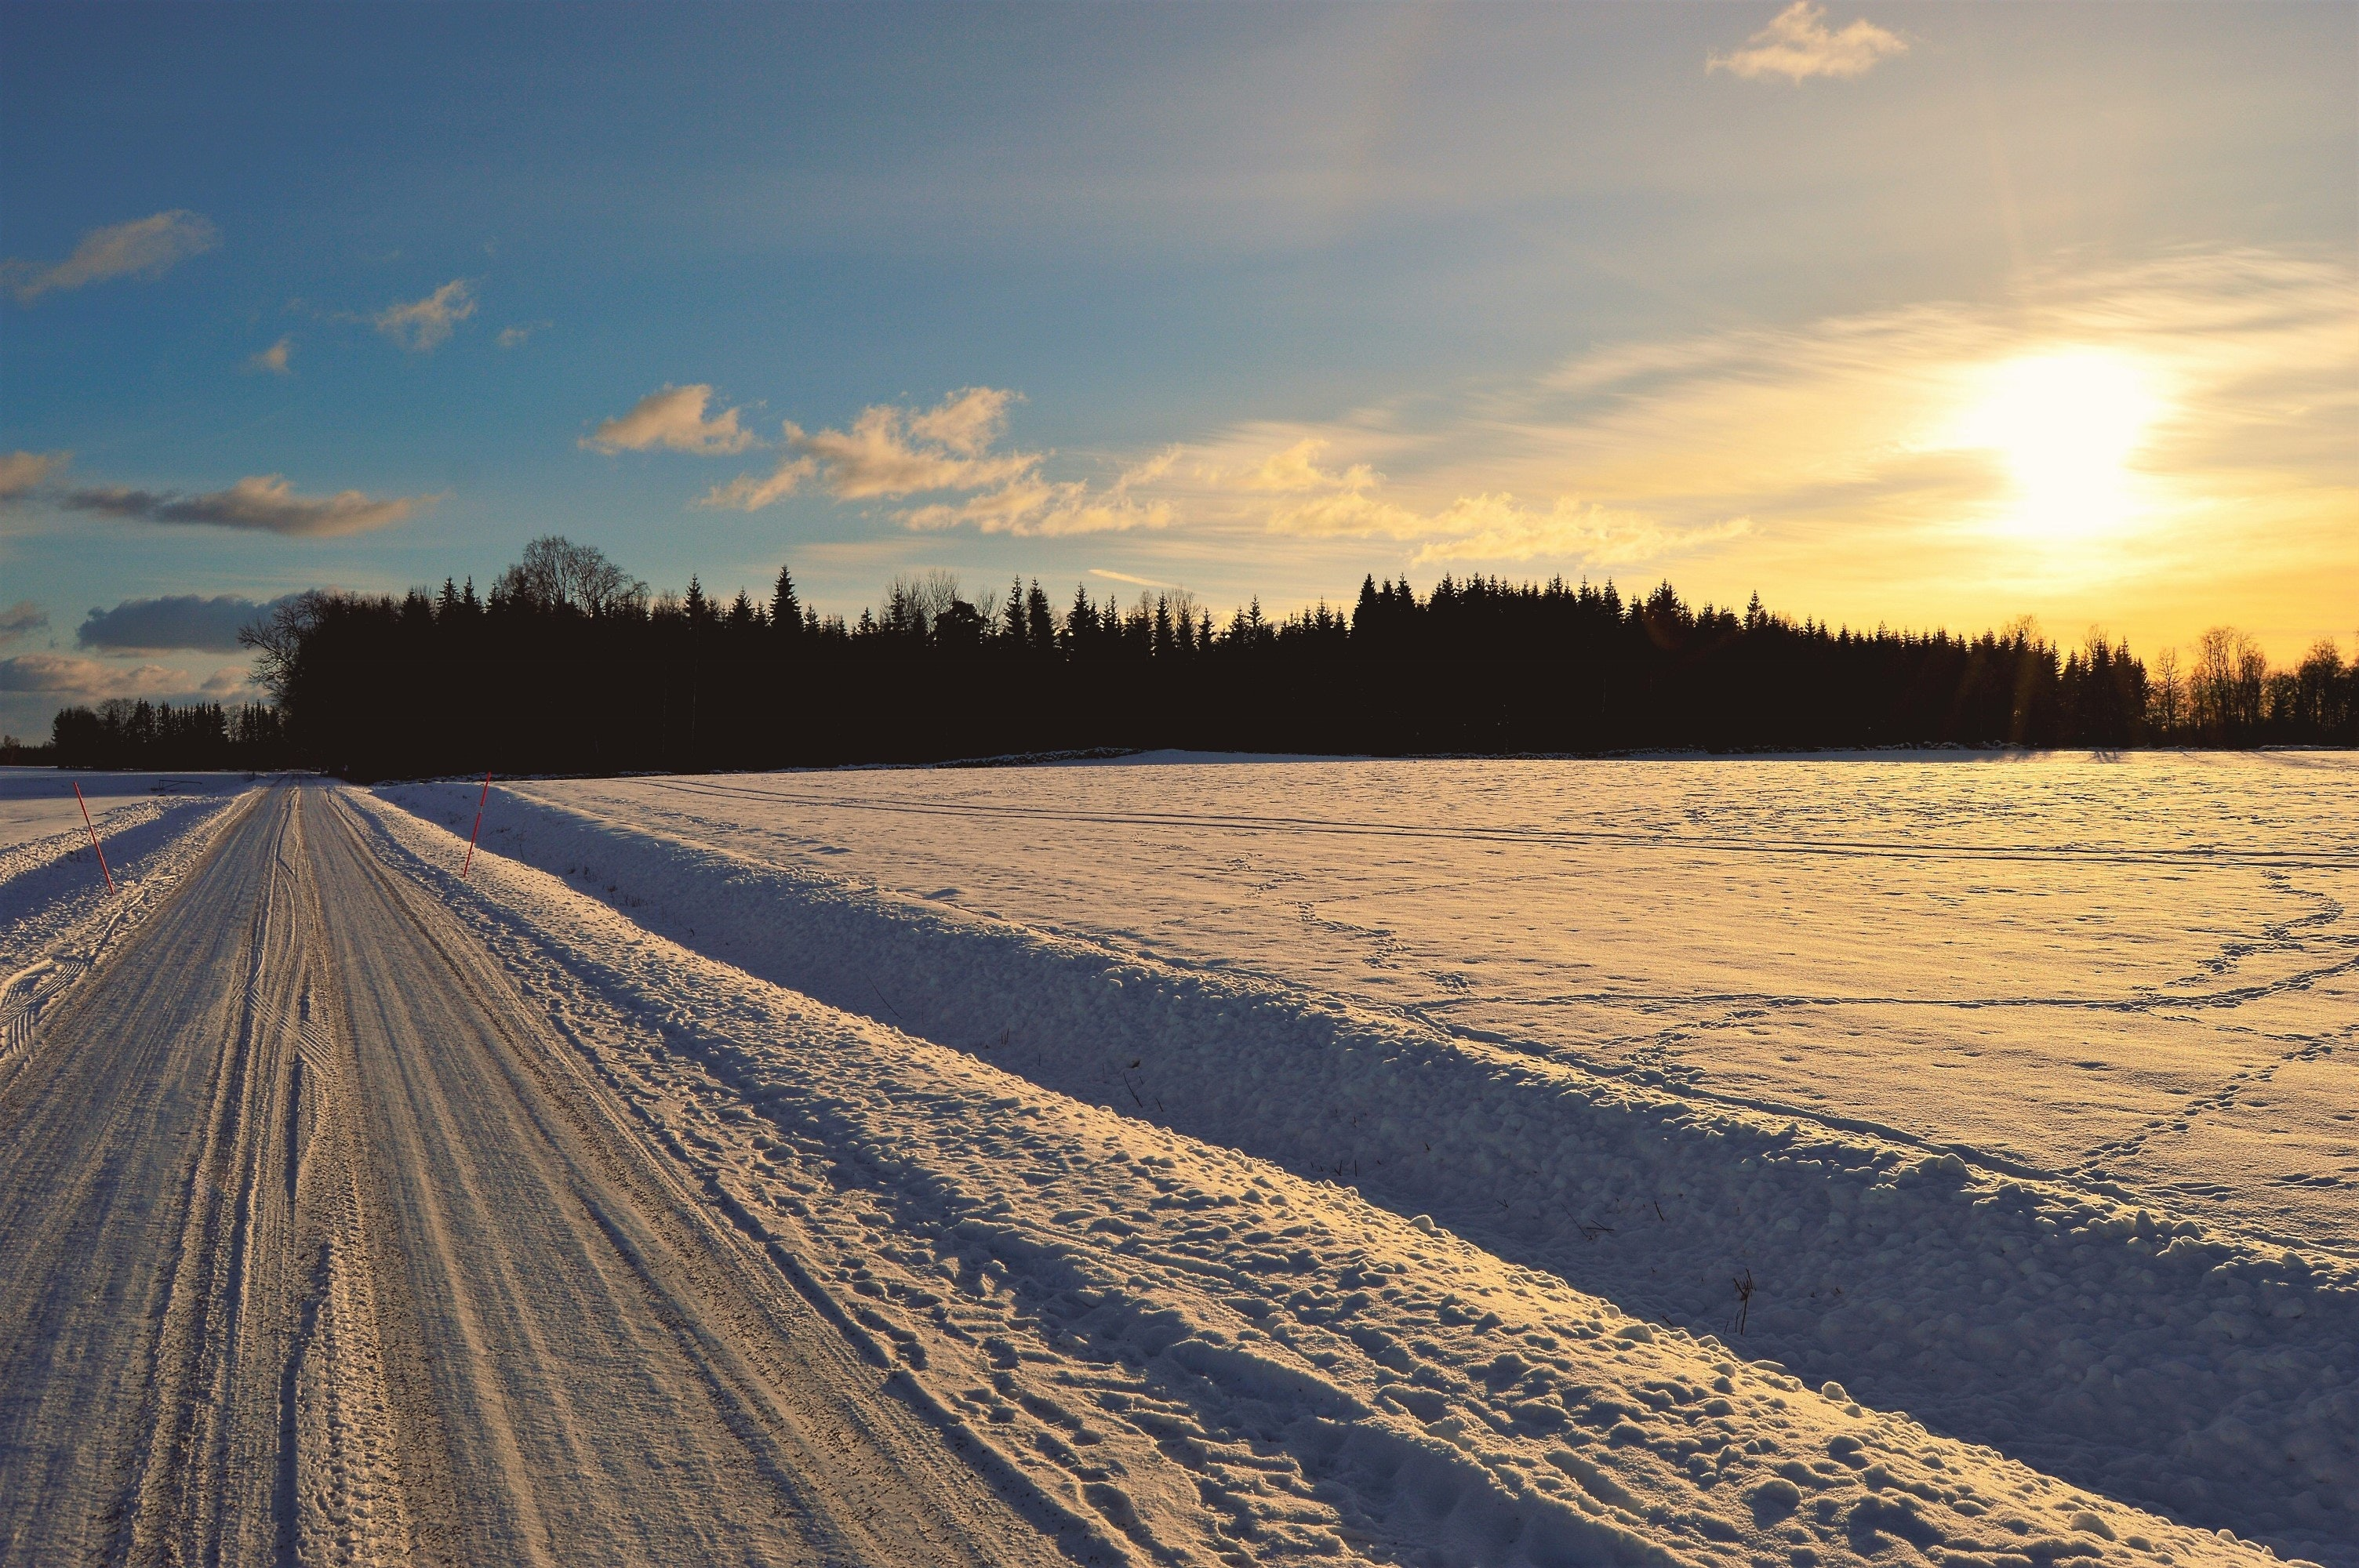 Snow covered road during golden hour photo